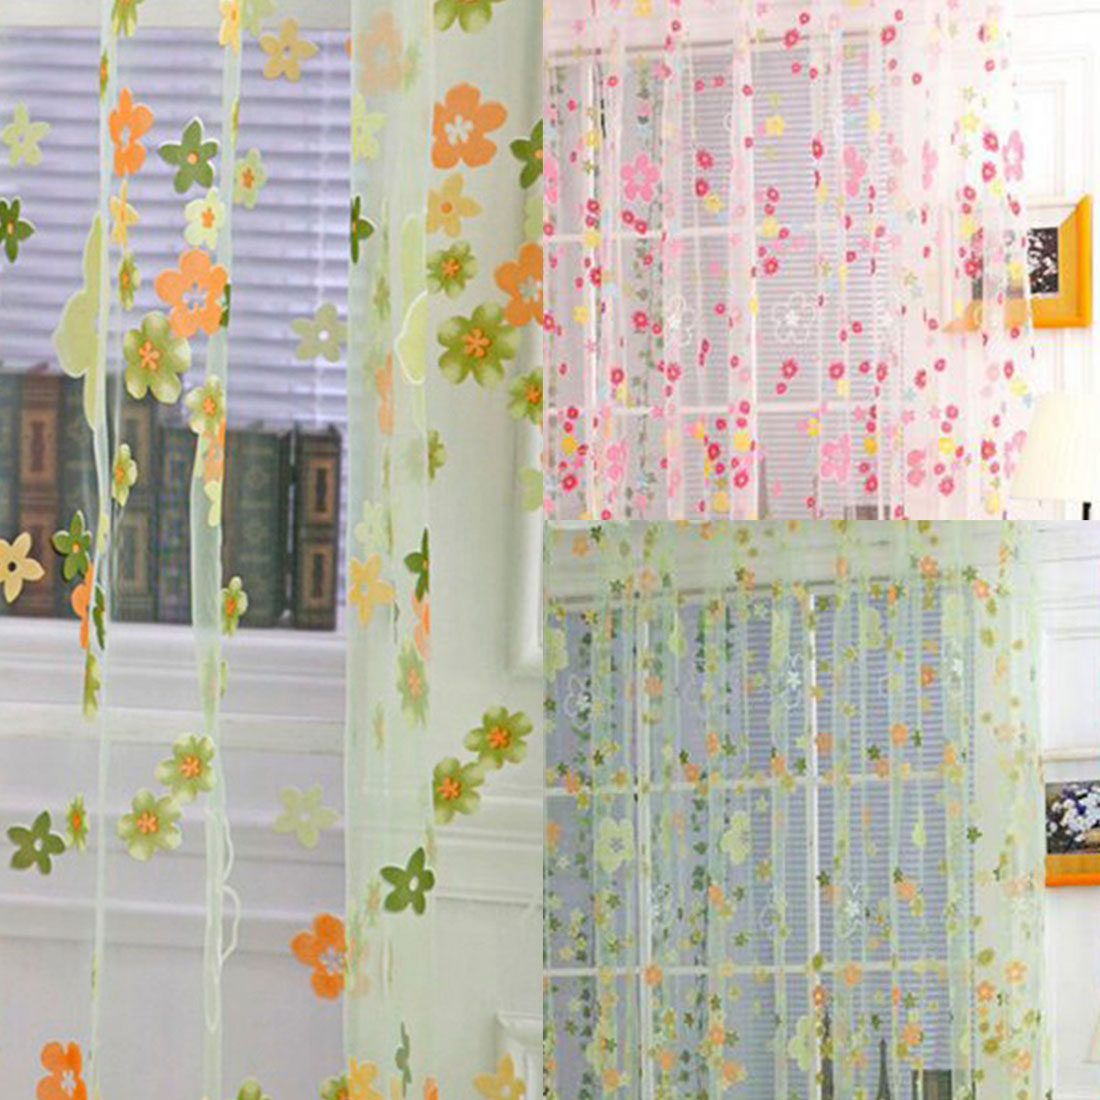 Roman curtain new design floral sheer window curtain for kitchen living room voile tulle - Curtain new design ...